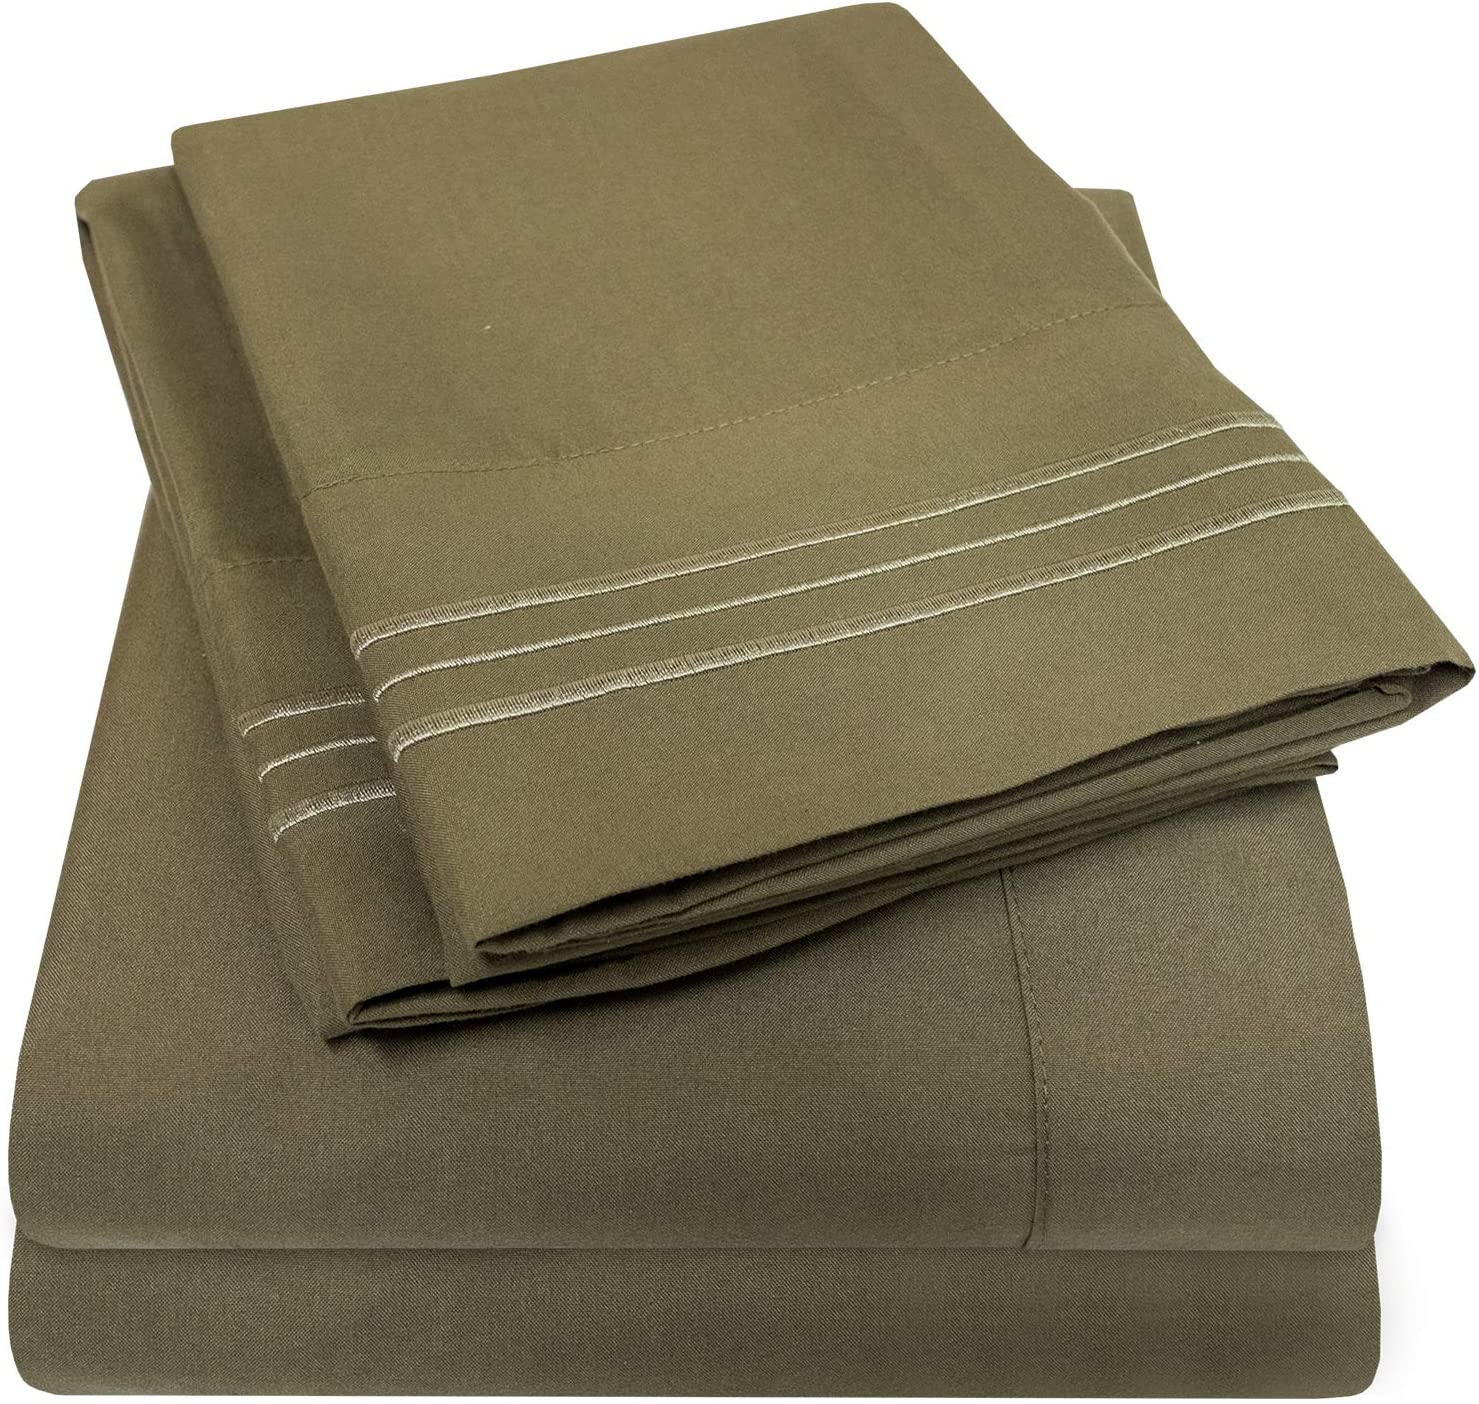 1500 Supreme Collection Bed Sheets Set - Luxury Hotel Style 4 Piece Extra Soft Sheet Set - Deep Pocket Wrinkle Free Hypoallergenic Bedding - Over 40+ Colors - Full, Olive